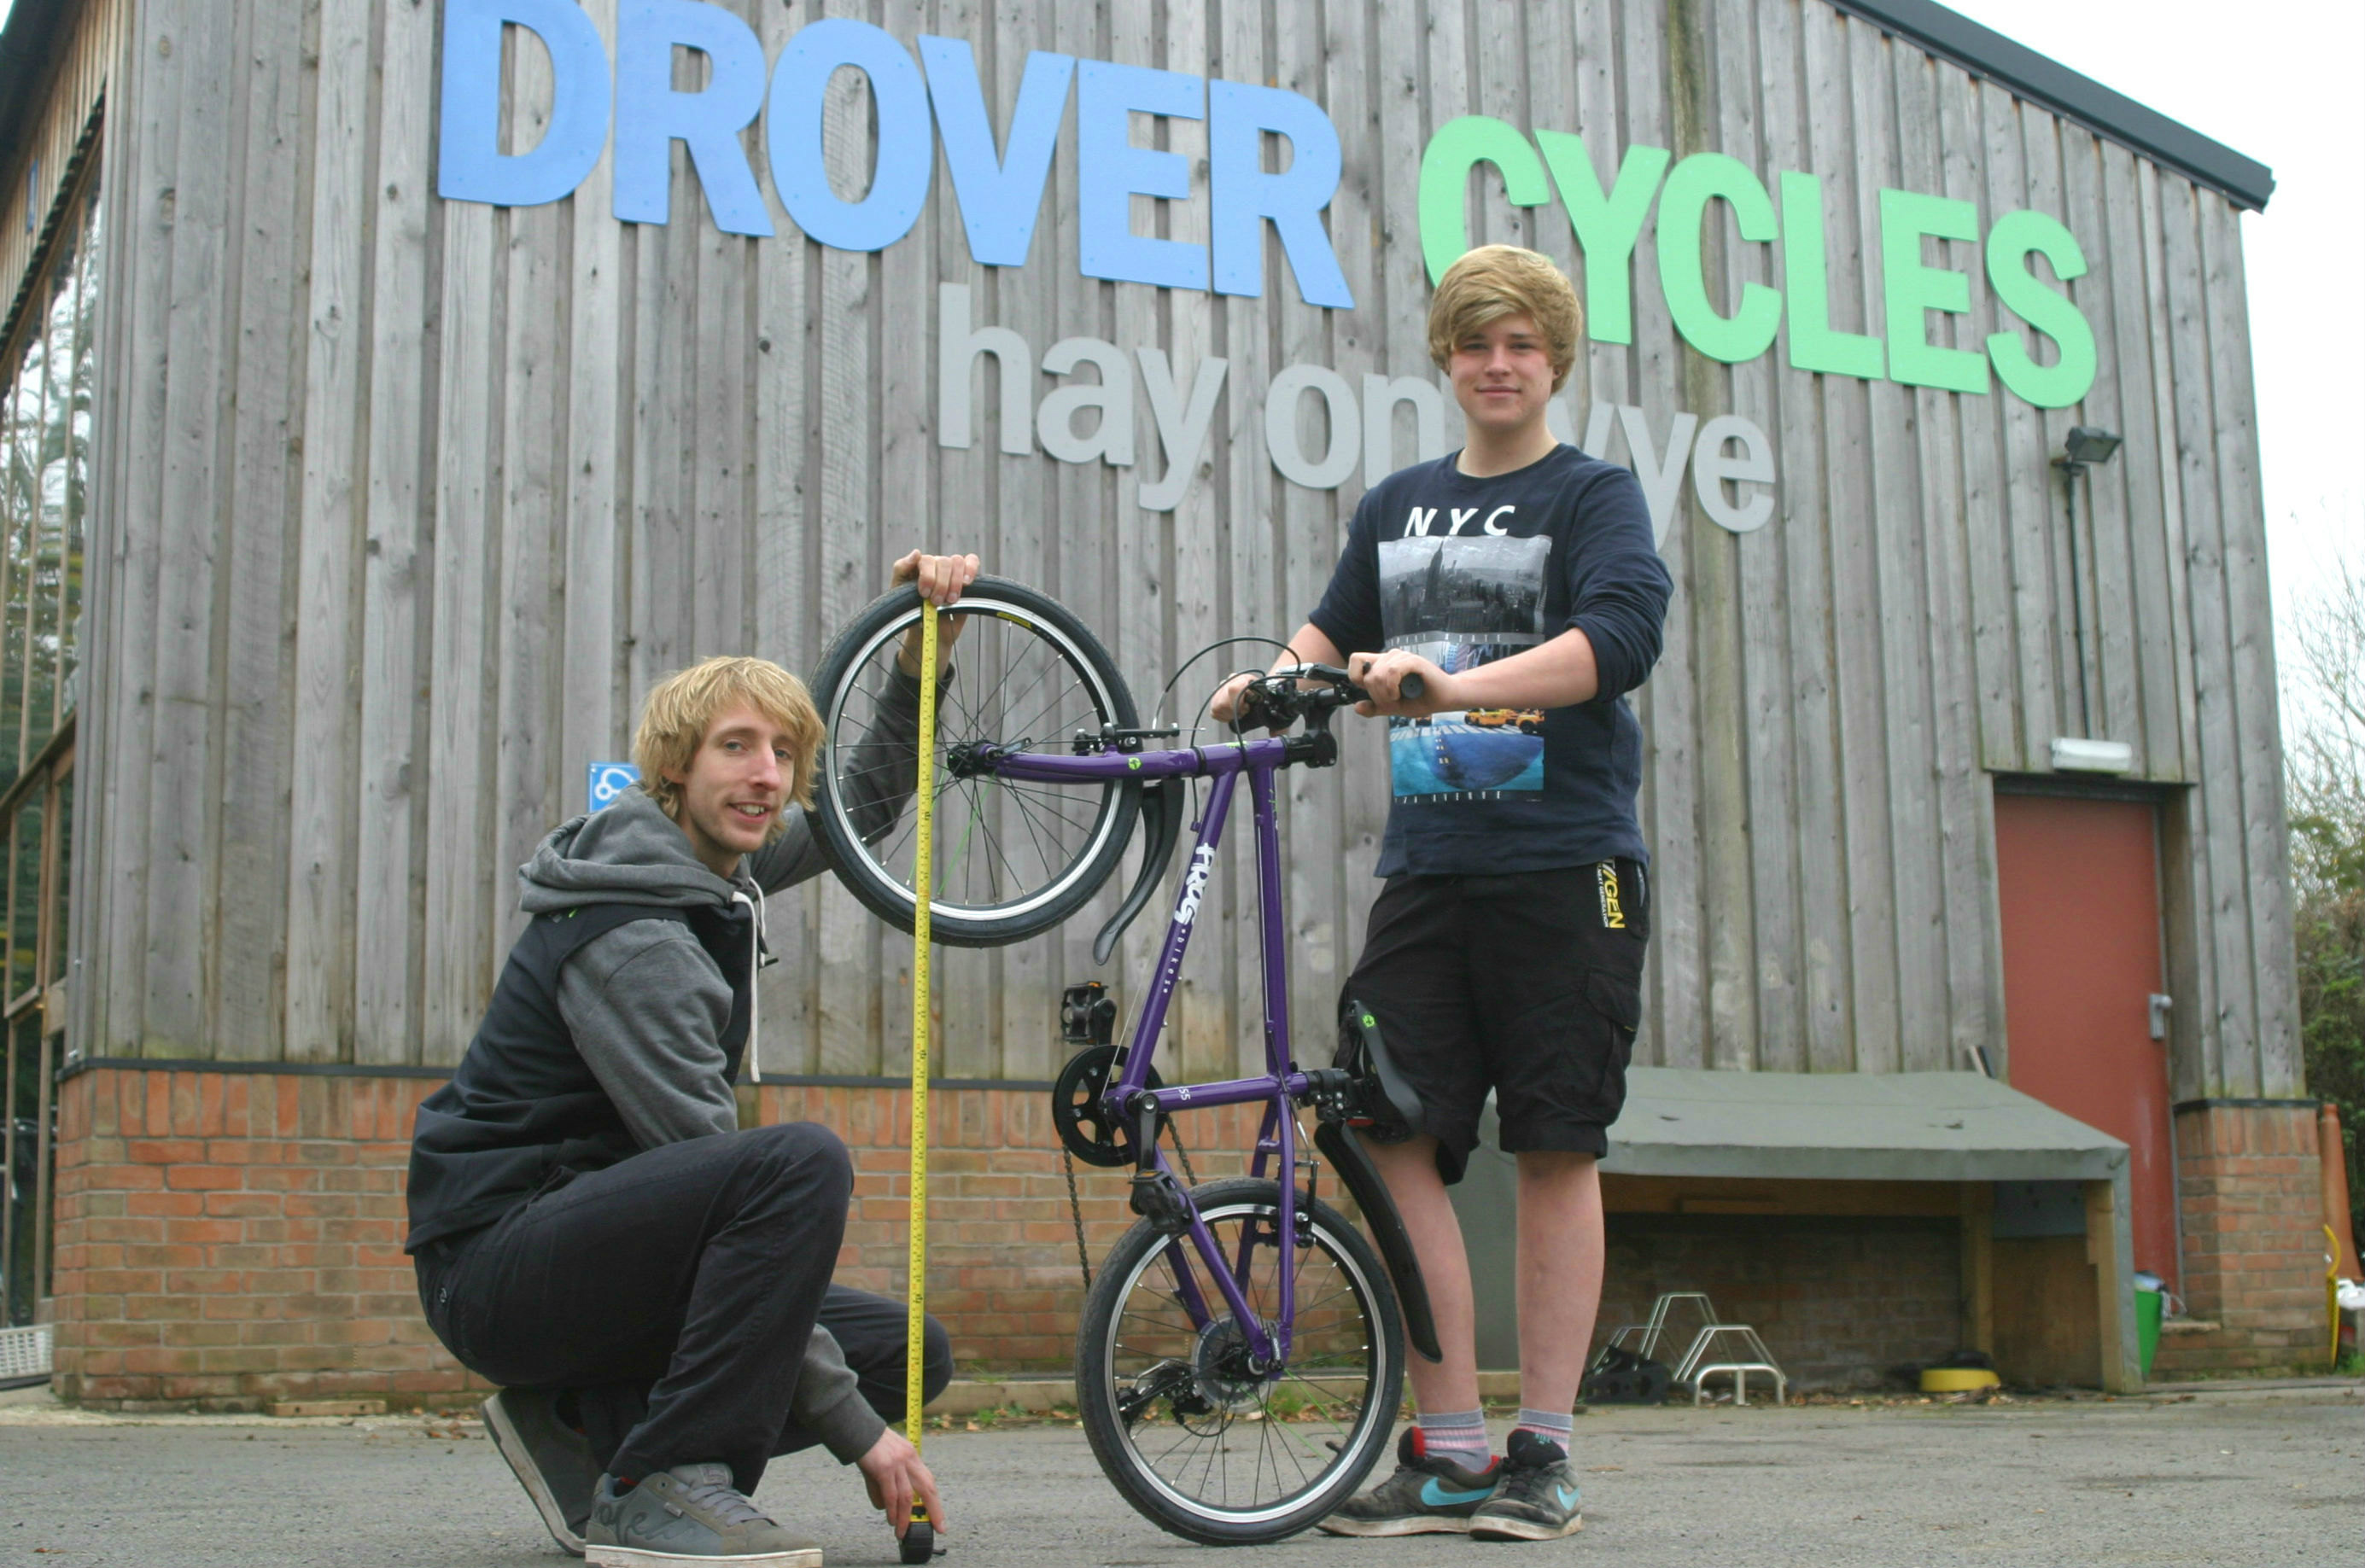 drover cycles bike fit